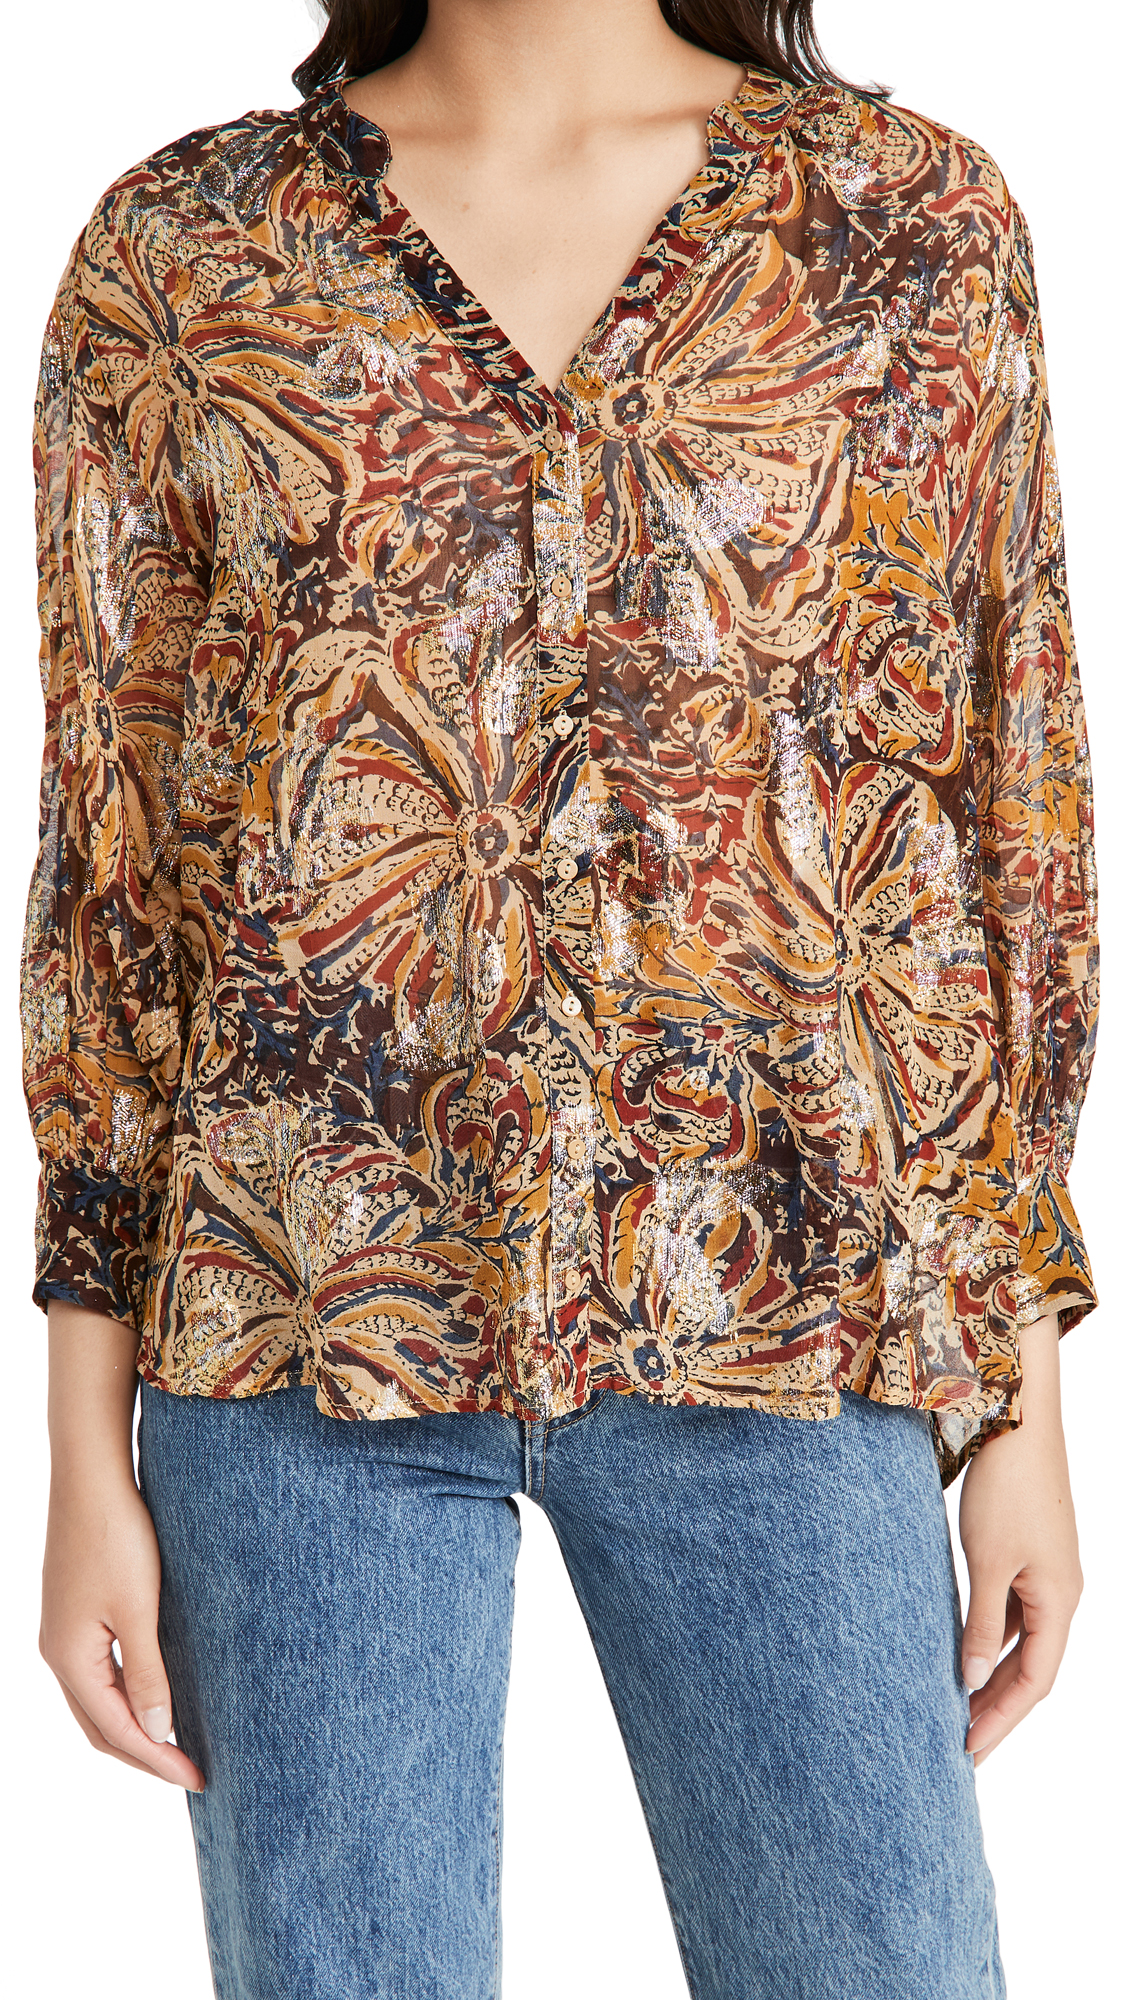 Ba & sh Quincy Blouse